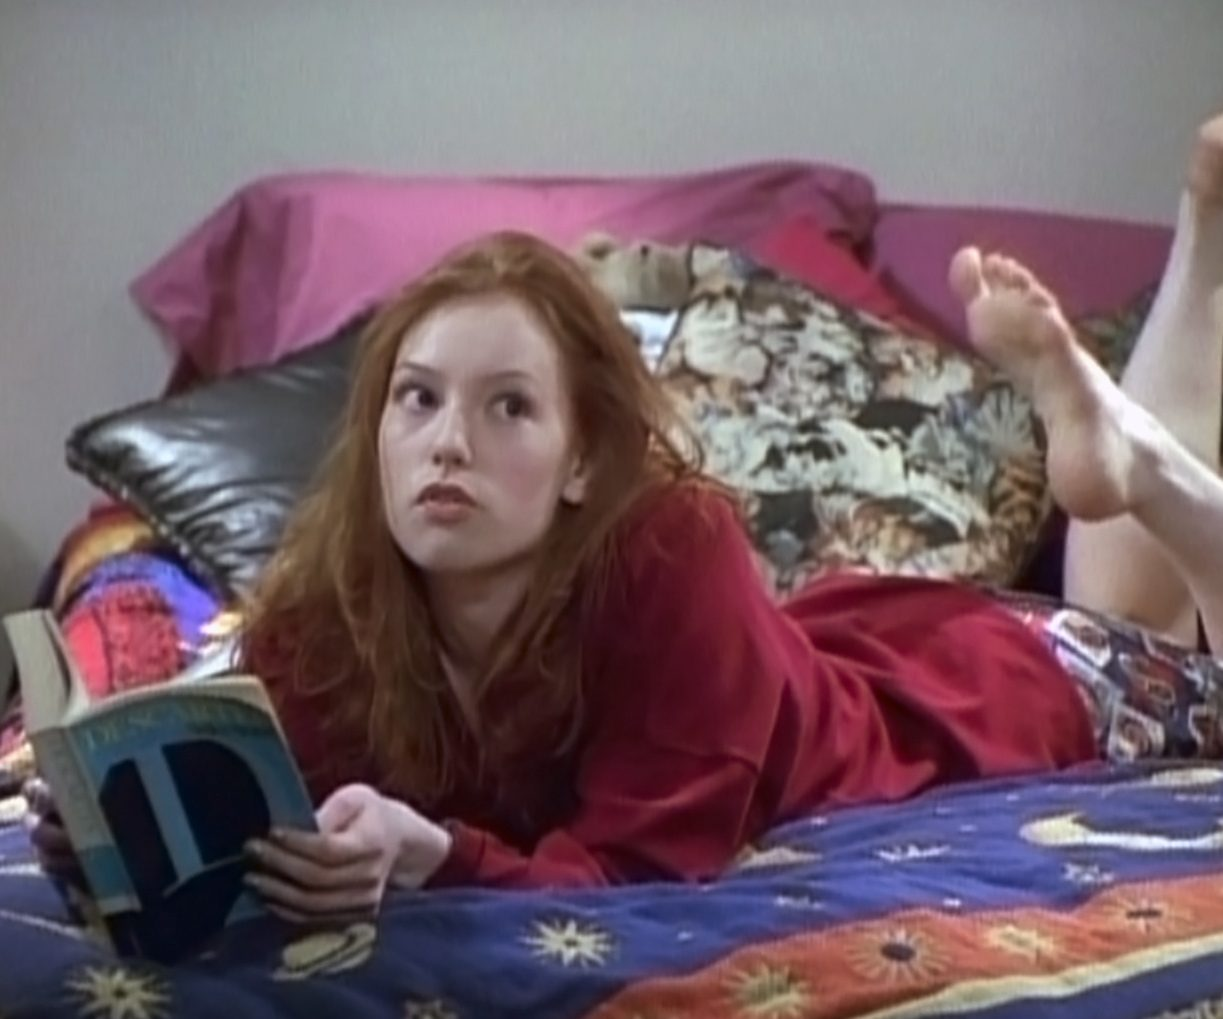 Alicia Witt Feet 4539157 e1616584859515 21 90s TV Actresses We All Had A Crush On When We Were Younger